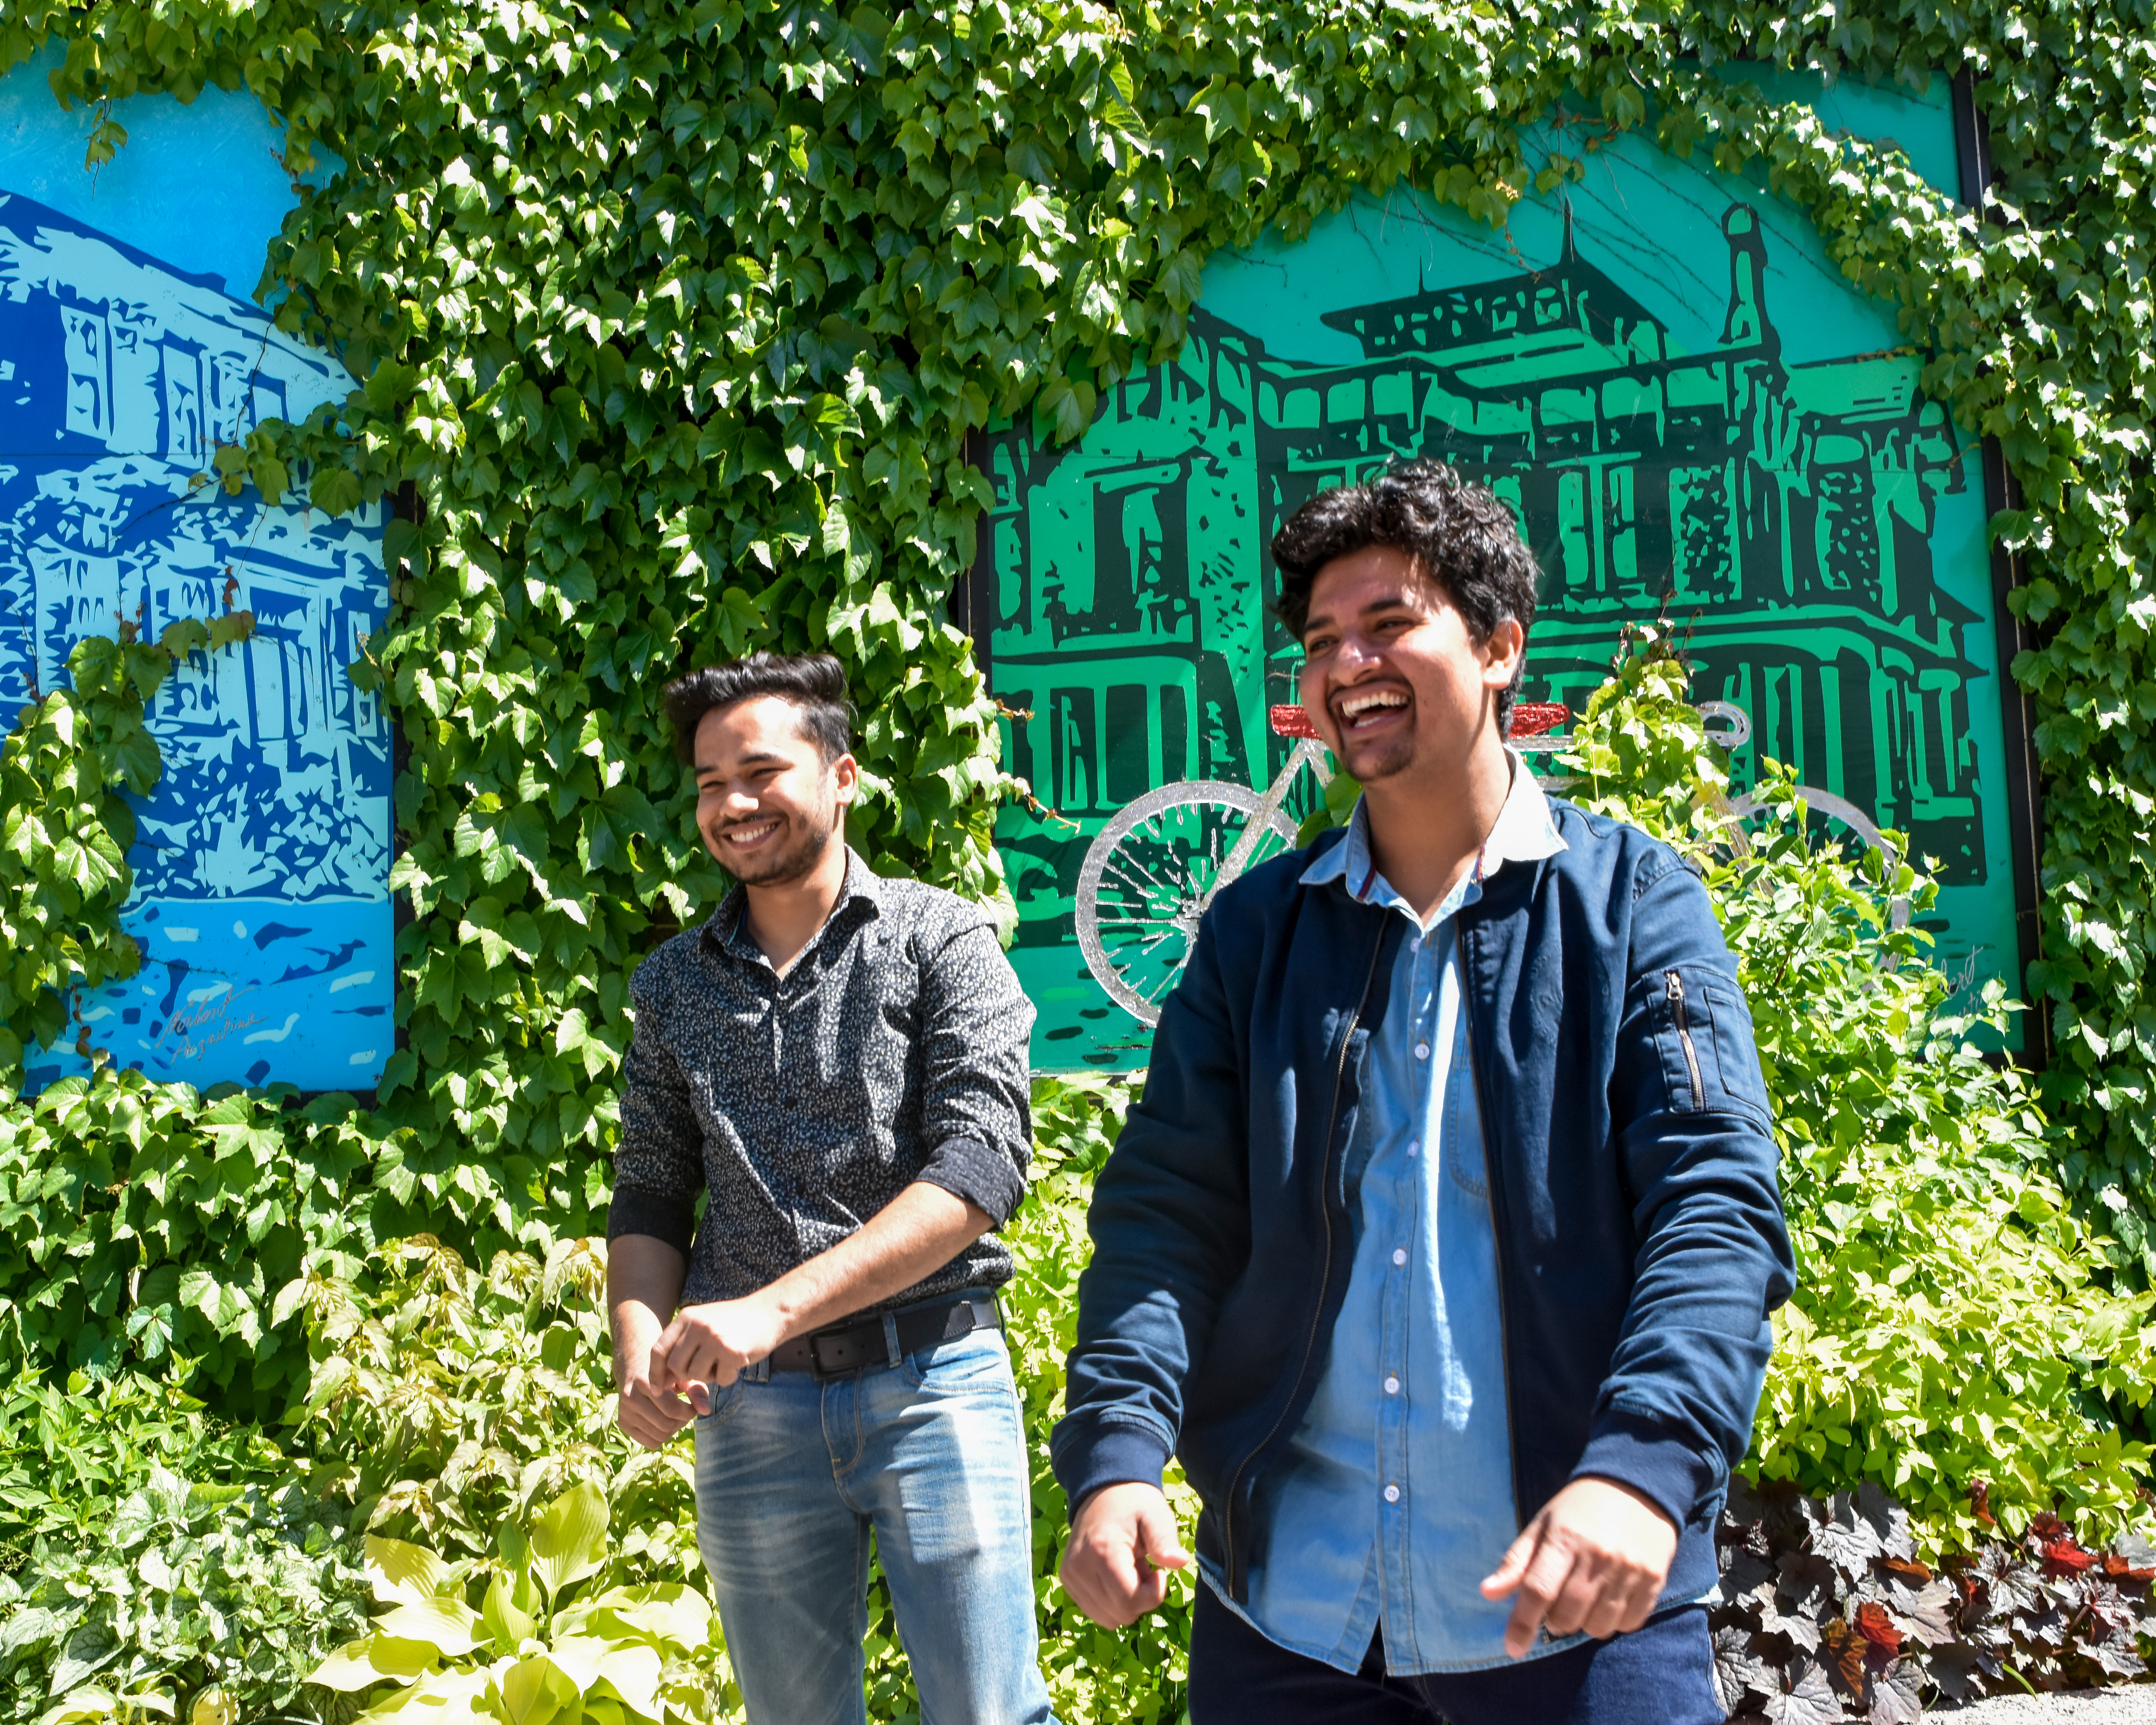 two students laughing outdoor near decorated wall in Brampton